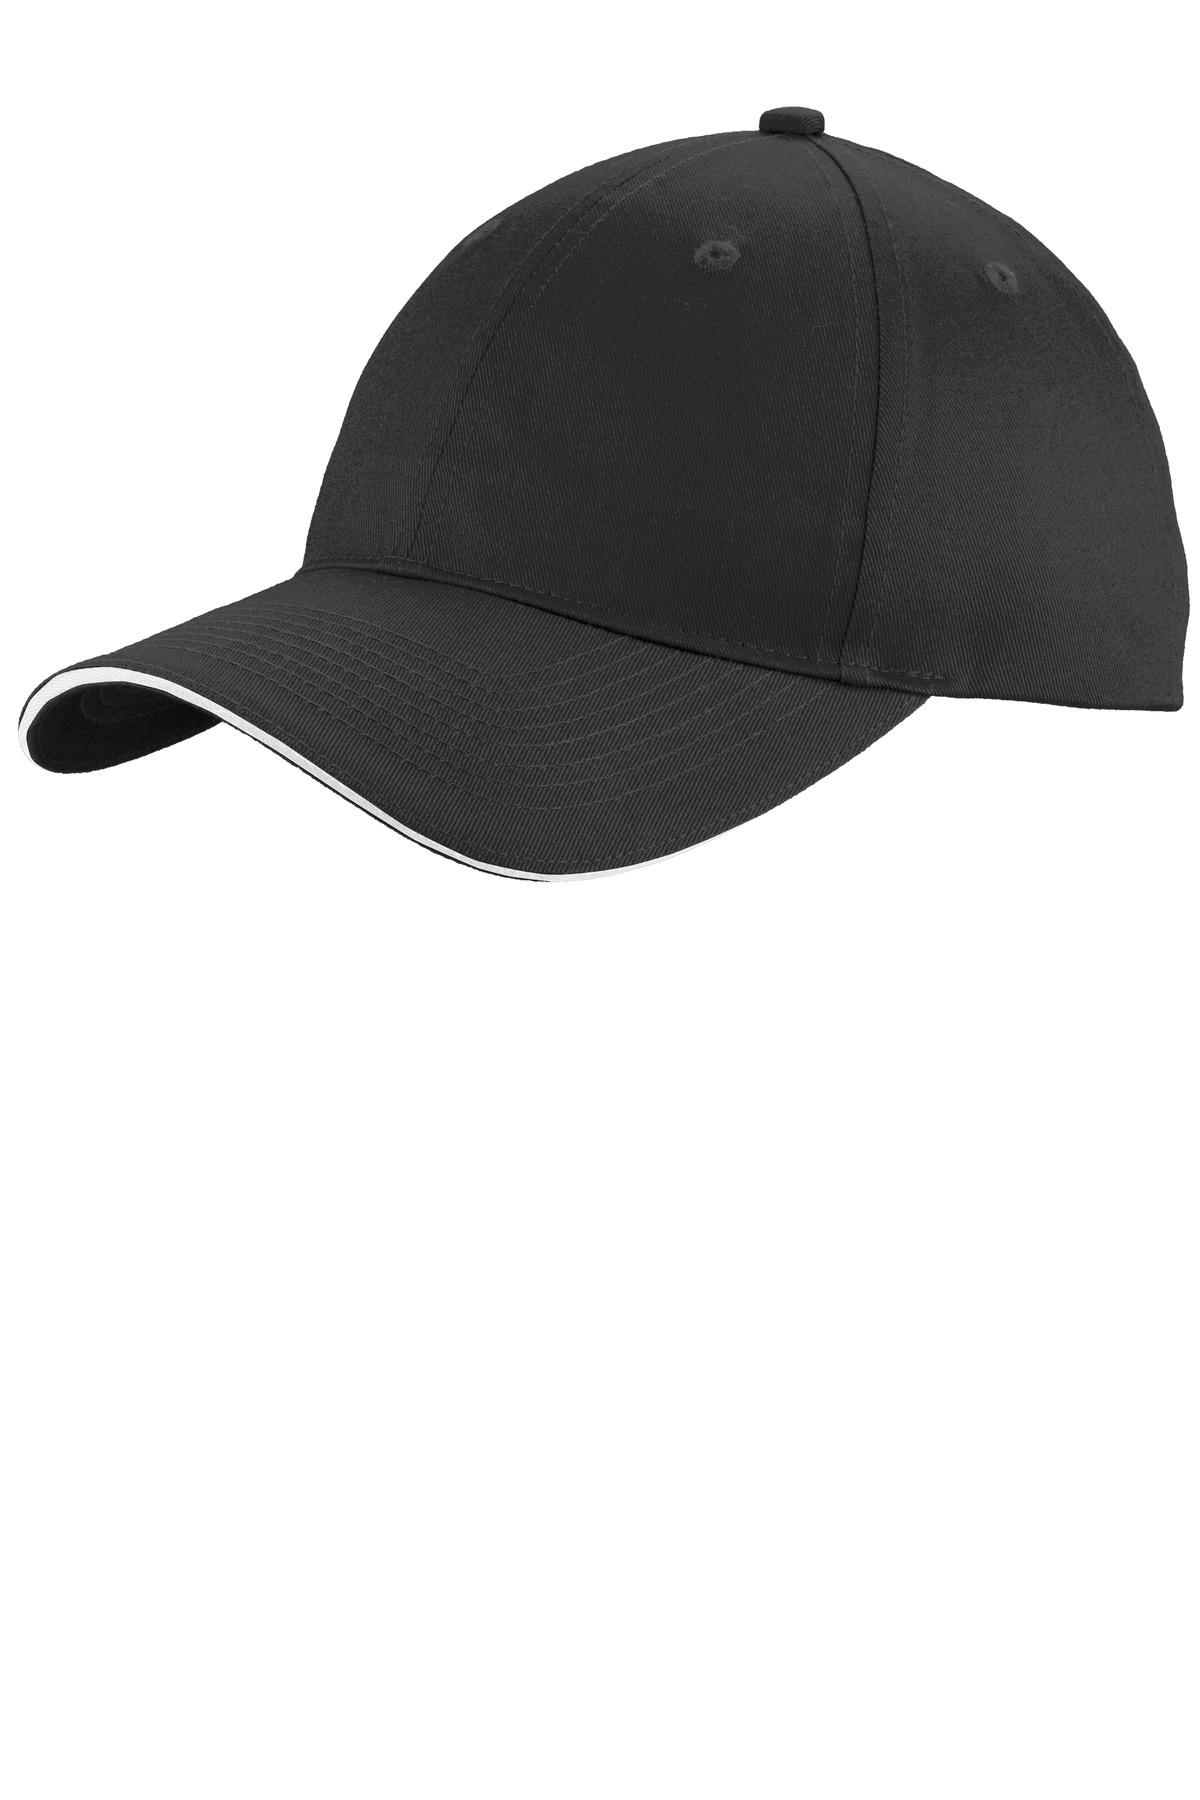 Port & Company® Unstructured Sandwich Bill Cap. WITH YOUR COMPANY NAME OR LOGO